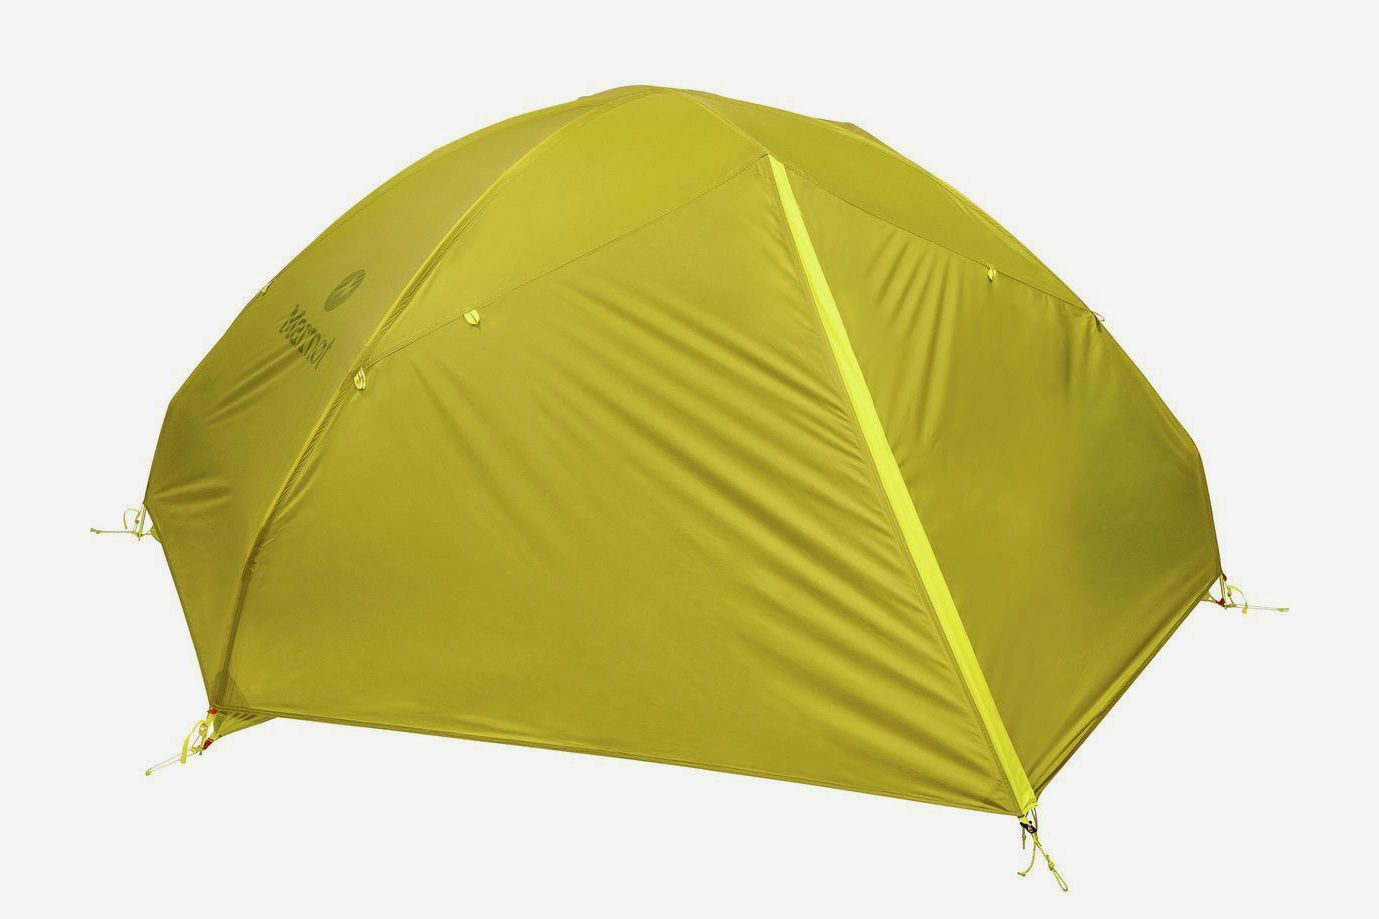 new products 9eea2 e140d The 8 Best Camping Tents: 2-Person, 4-Person and More 2018 ...